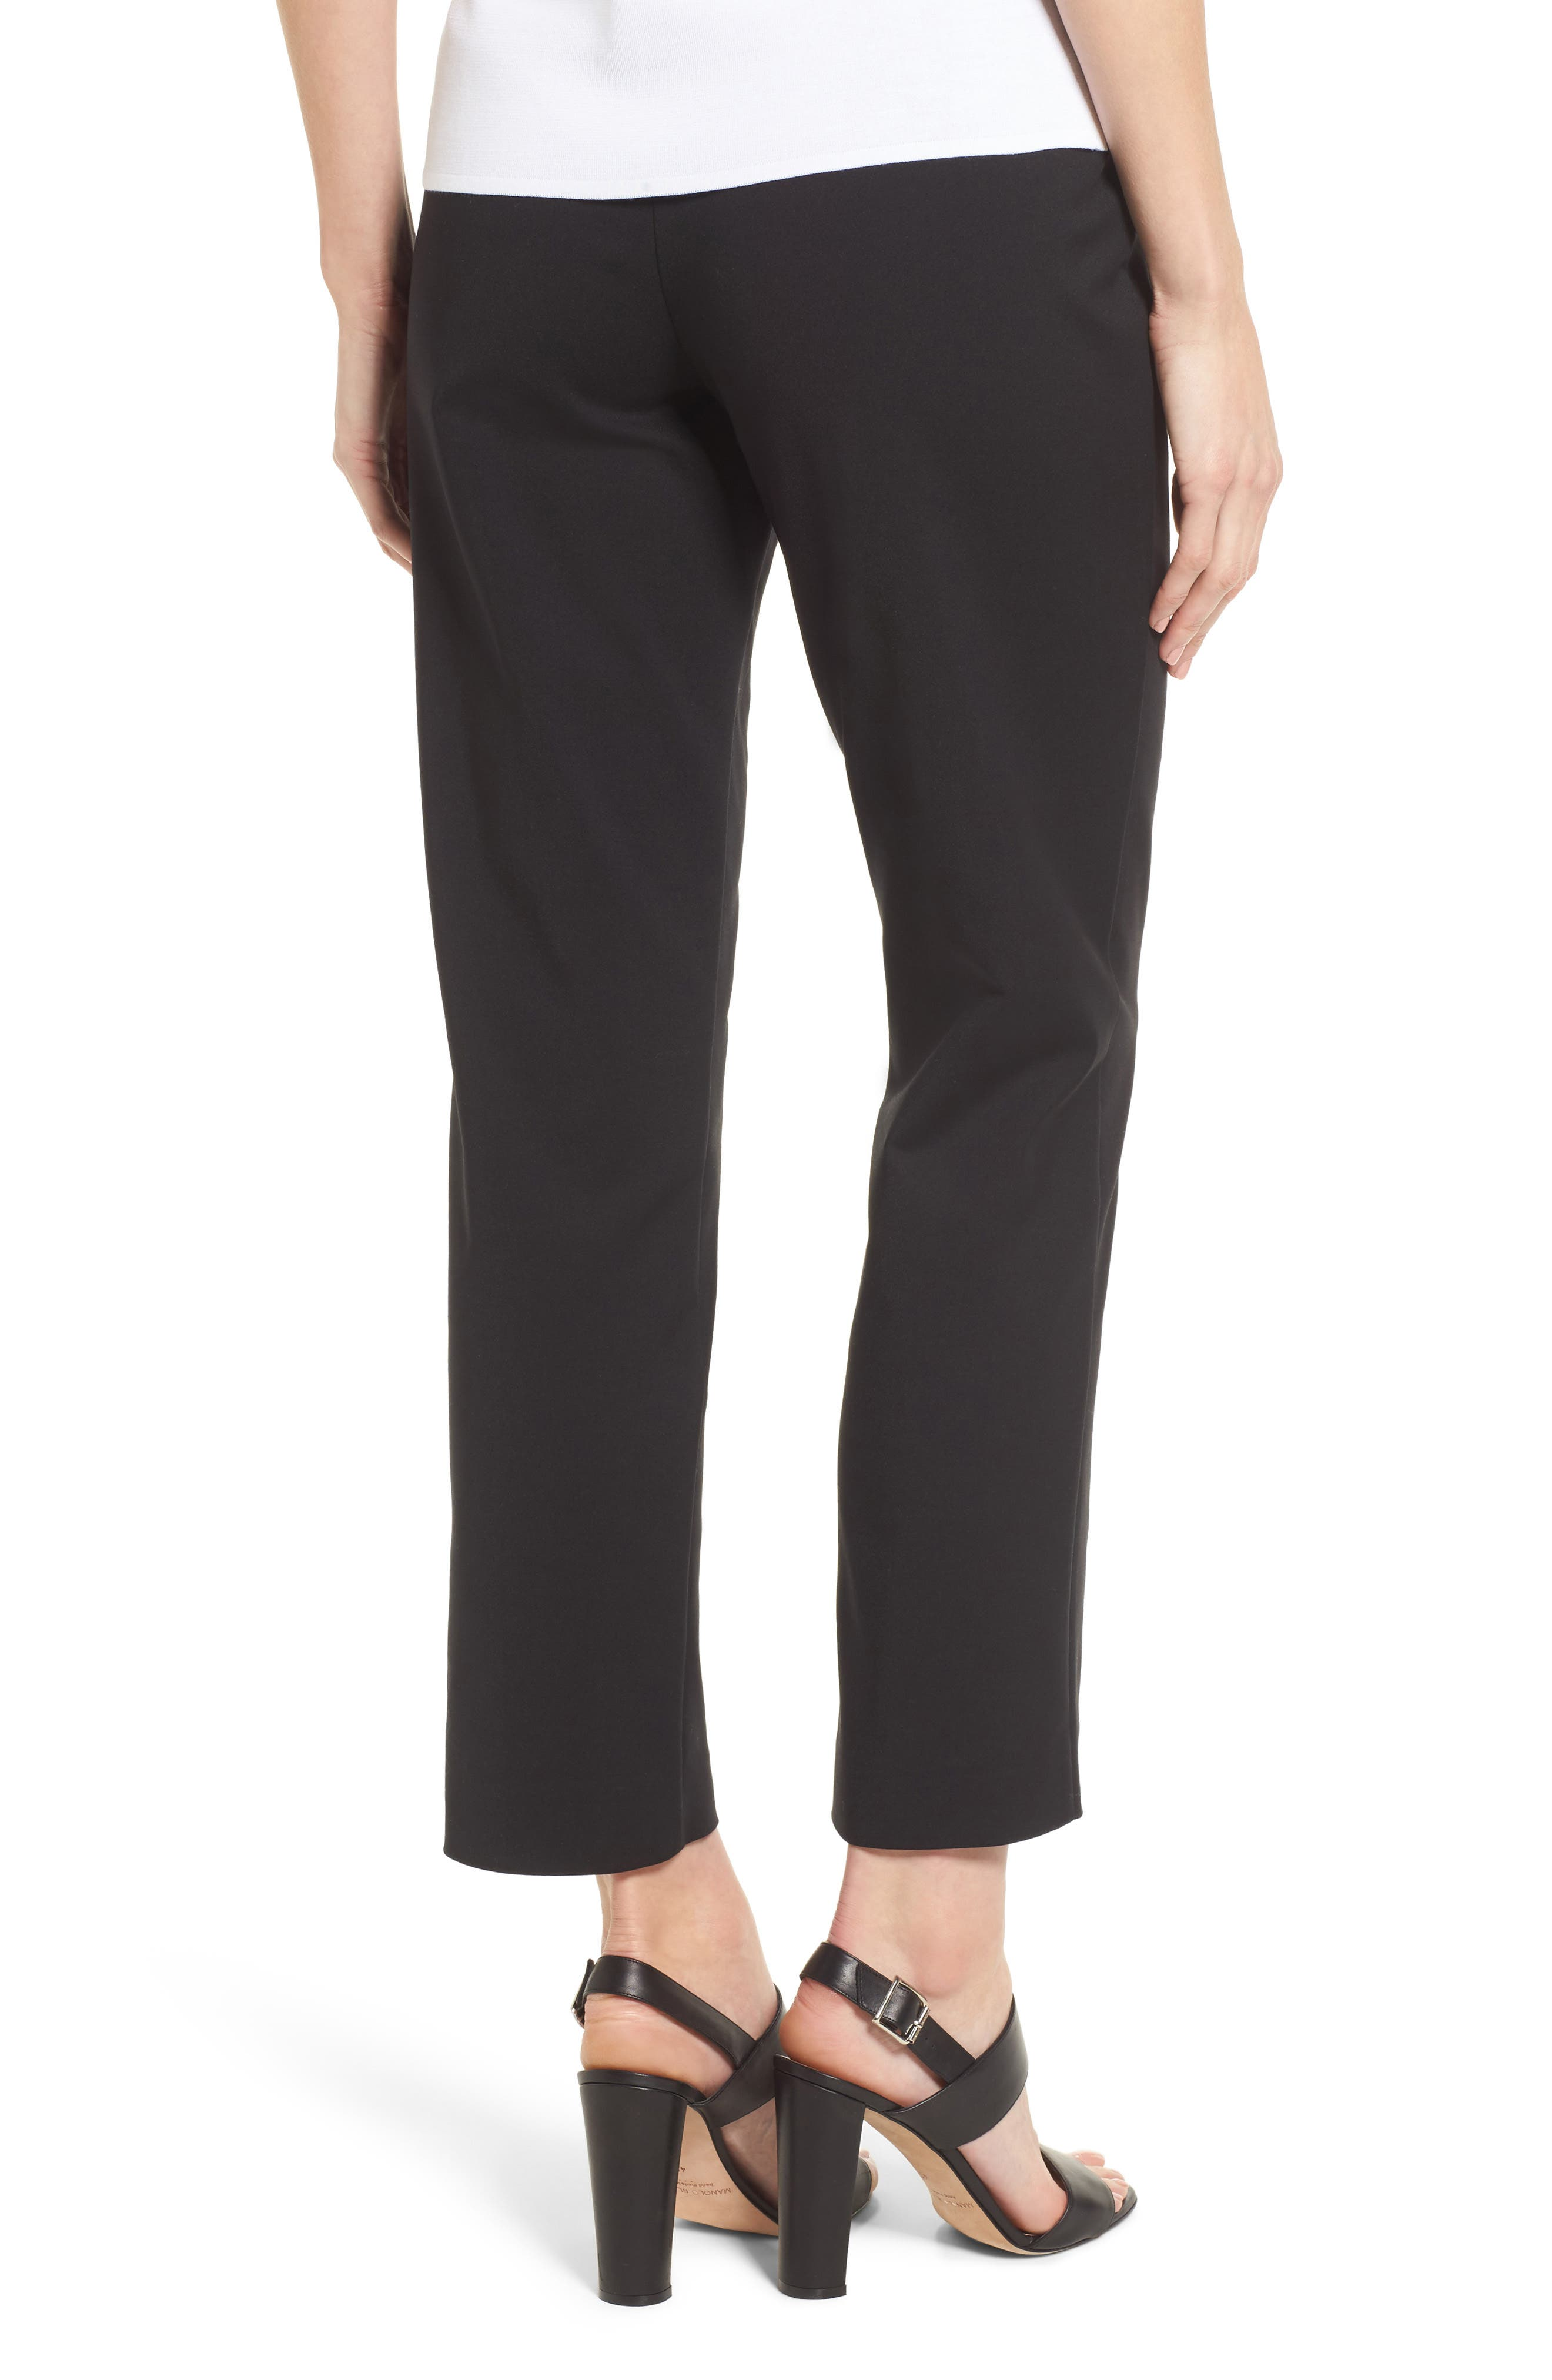 Ming Want Pull-On Ankle Pants,                             Alternate thumbnail 2, color,                             Black